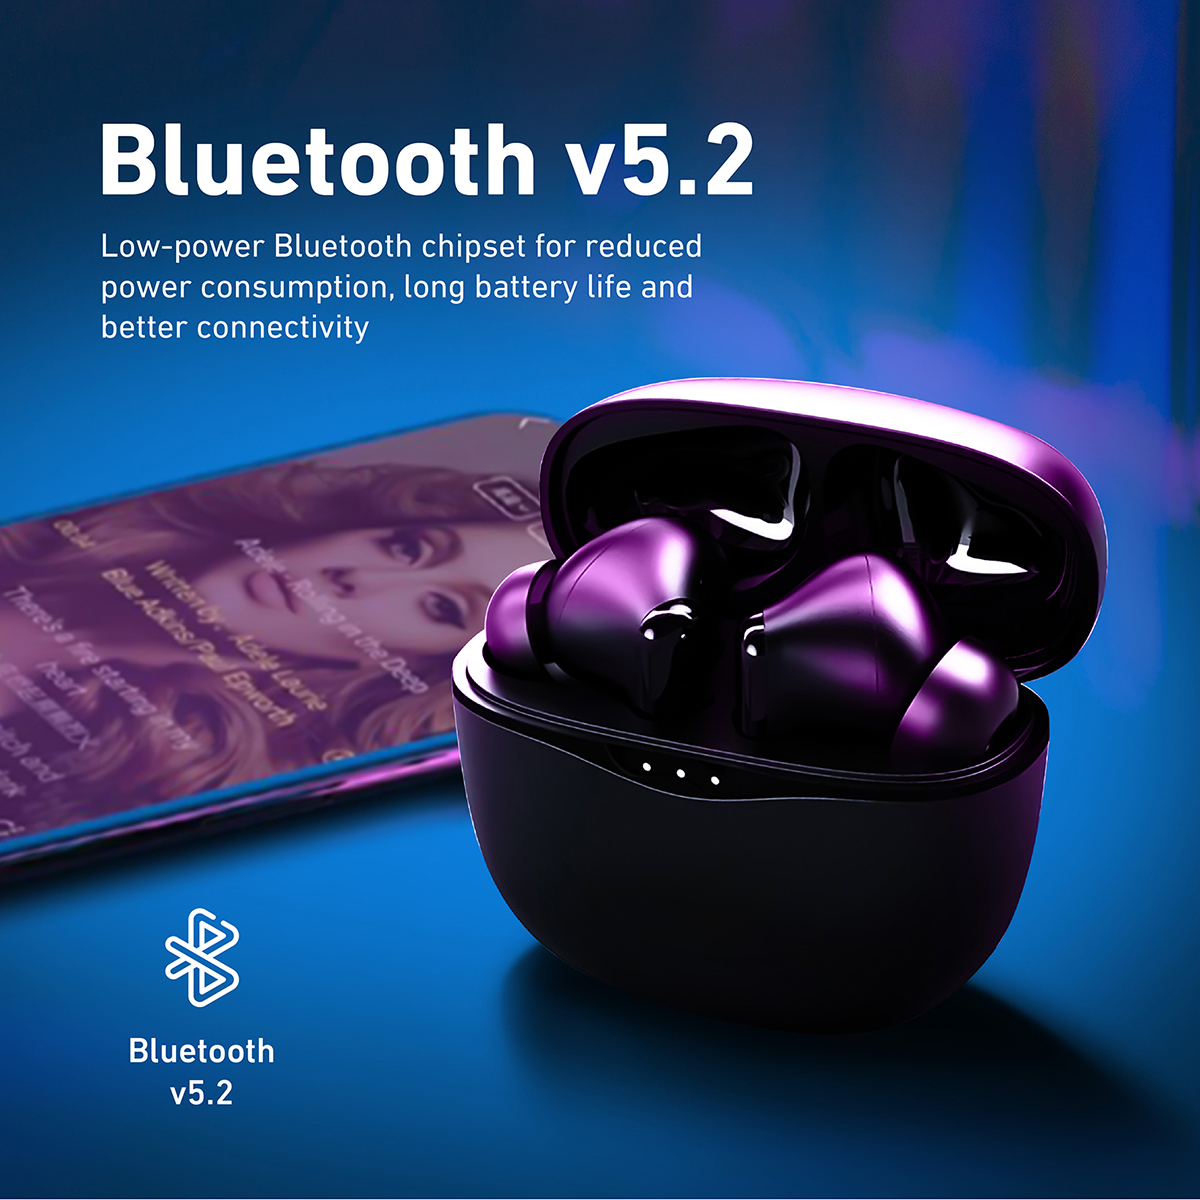 Promate True Wireless Earbuds, In-Ear Hybrid Active Noise Cancelling Bluetooth v5.2 Earphones with Magnetic Closure Charging Case, Mic, IPX6 Water Resistance, Touch Control and 15.5H Playtime for iPhone 12, Samsung S21, iPod, Hybrid-ANC White